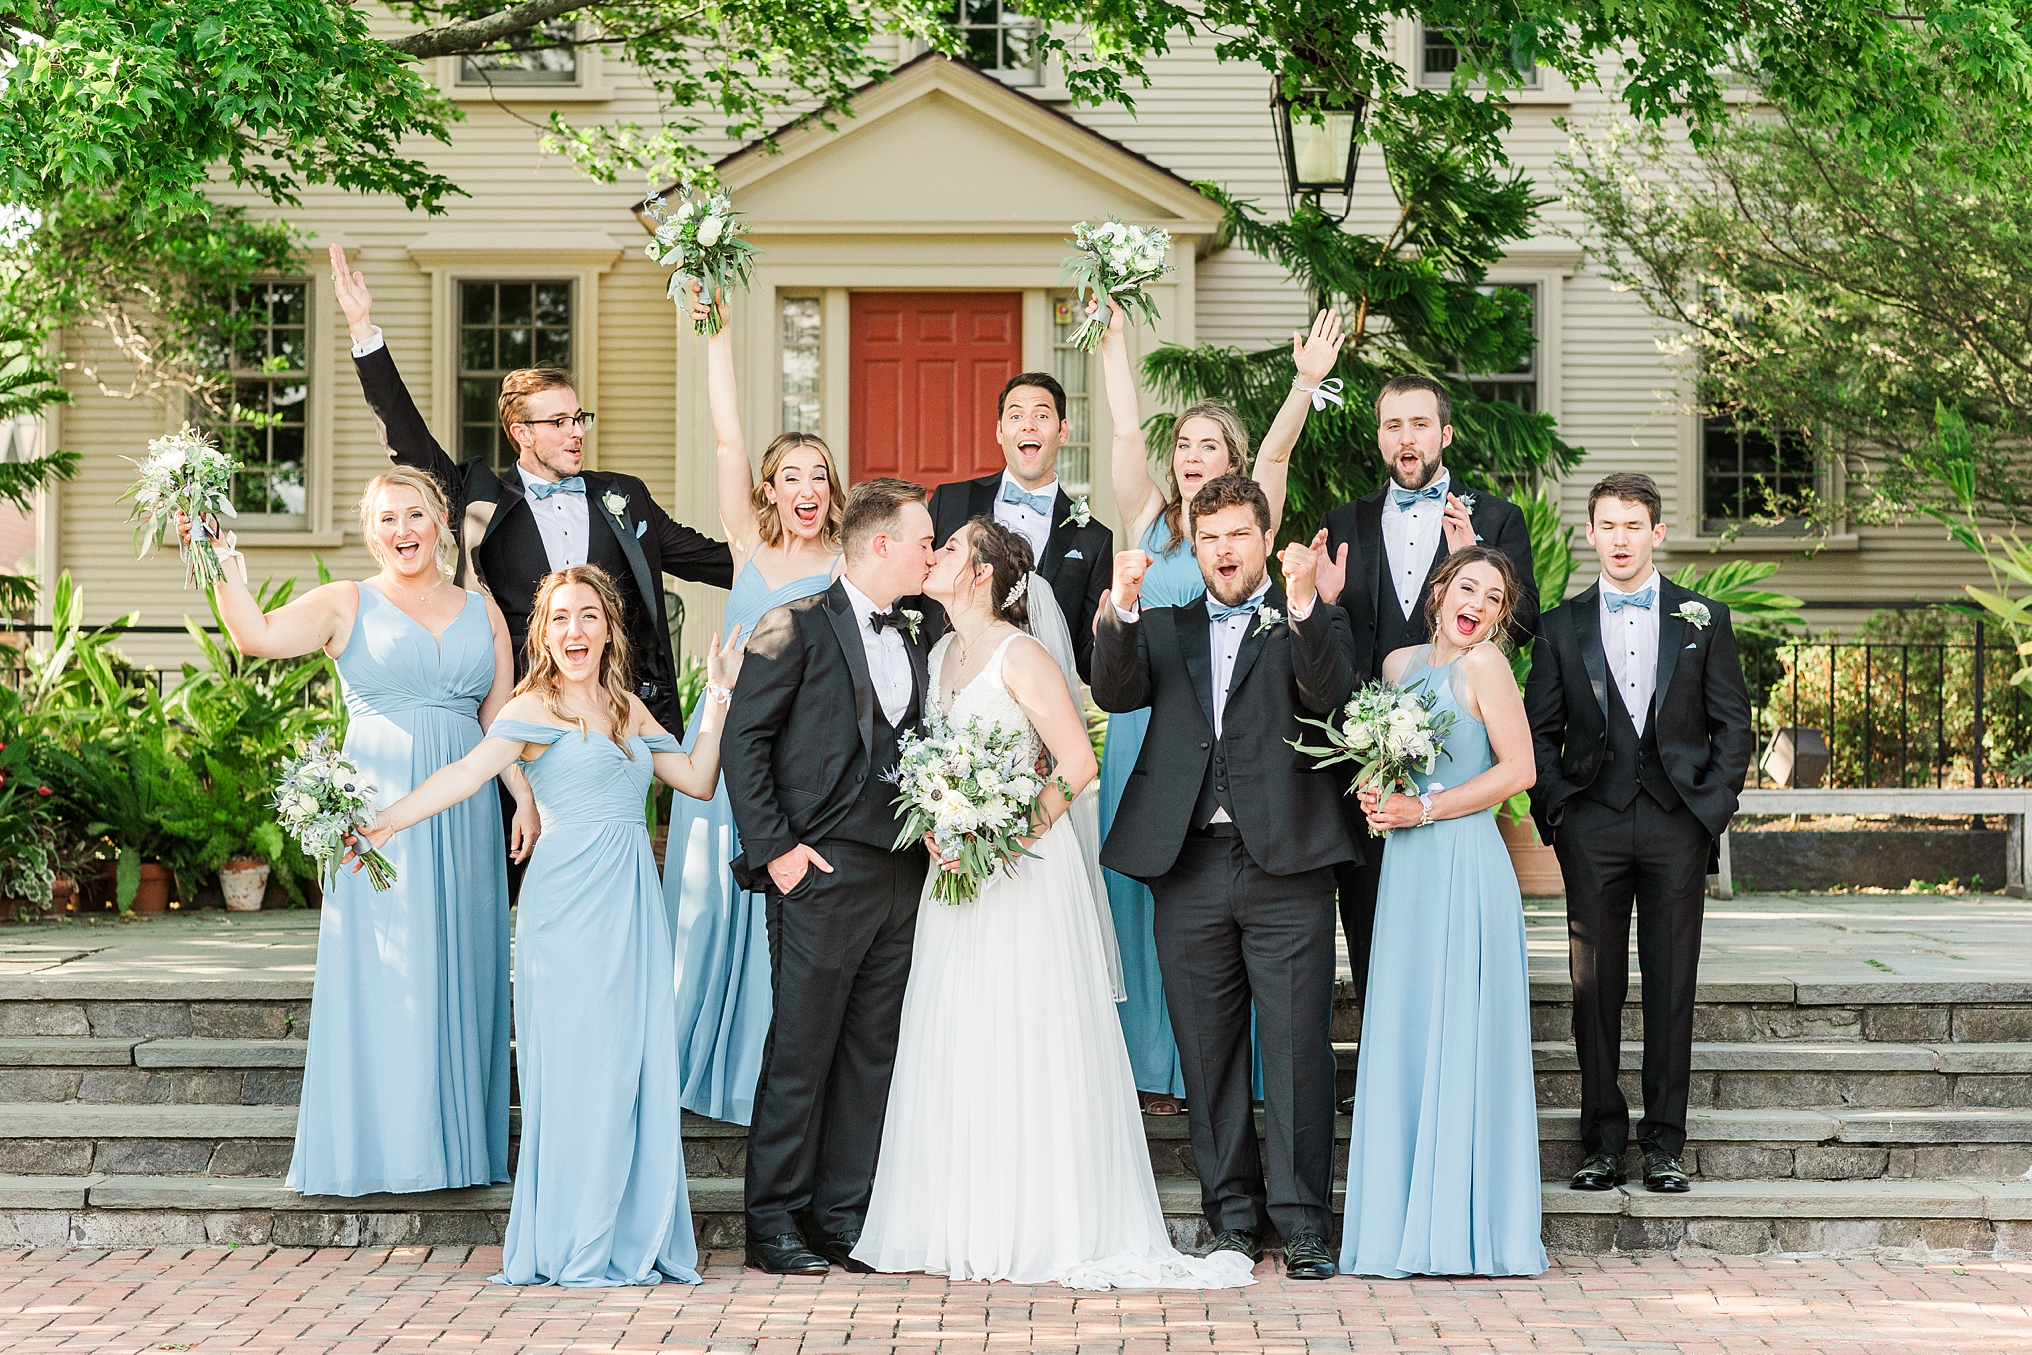 Greek wedding party pictures at Tower Hill botanic garden, a beautiful estate wedding venue in Central Massachusetts.